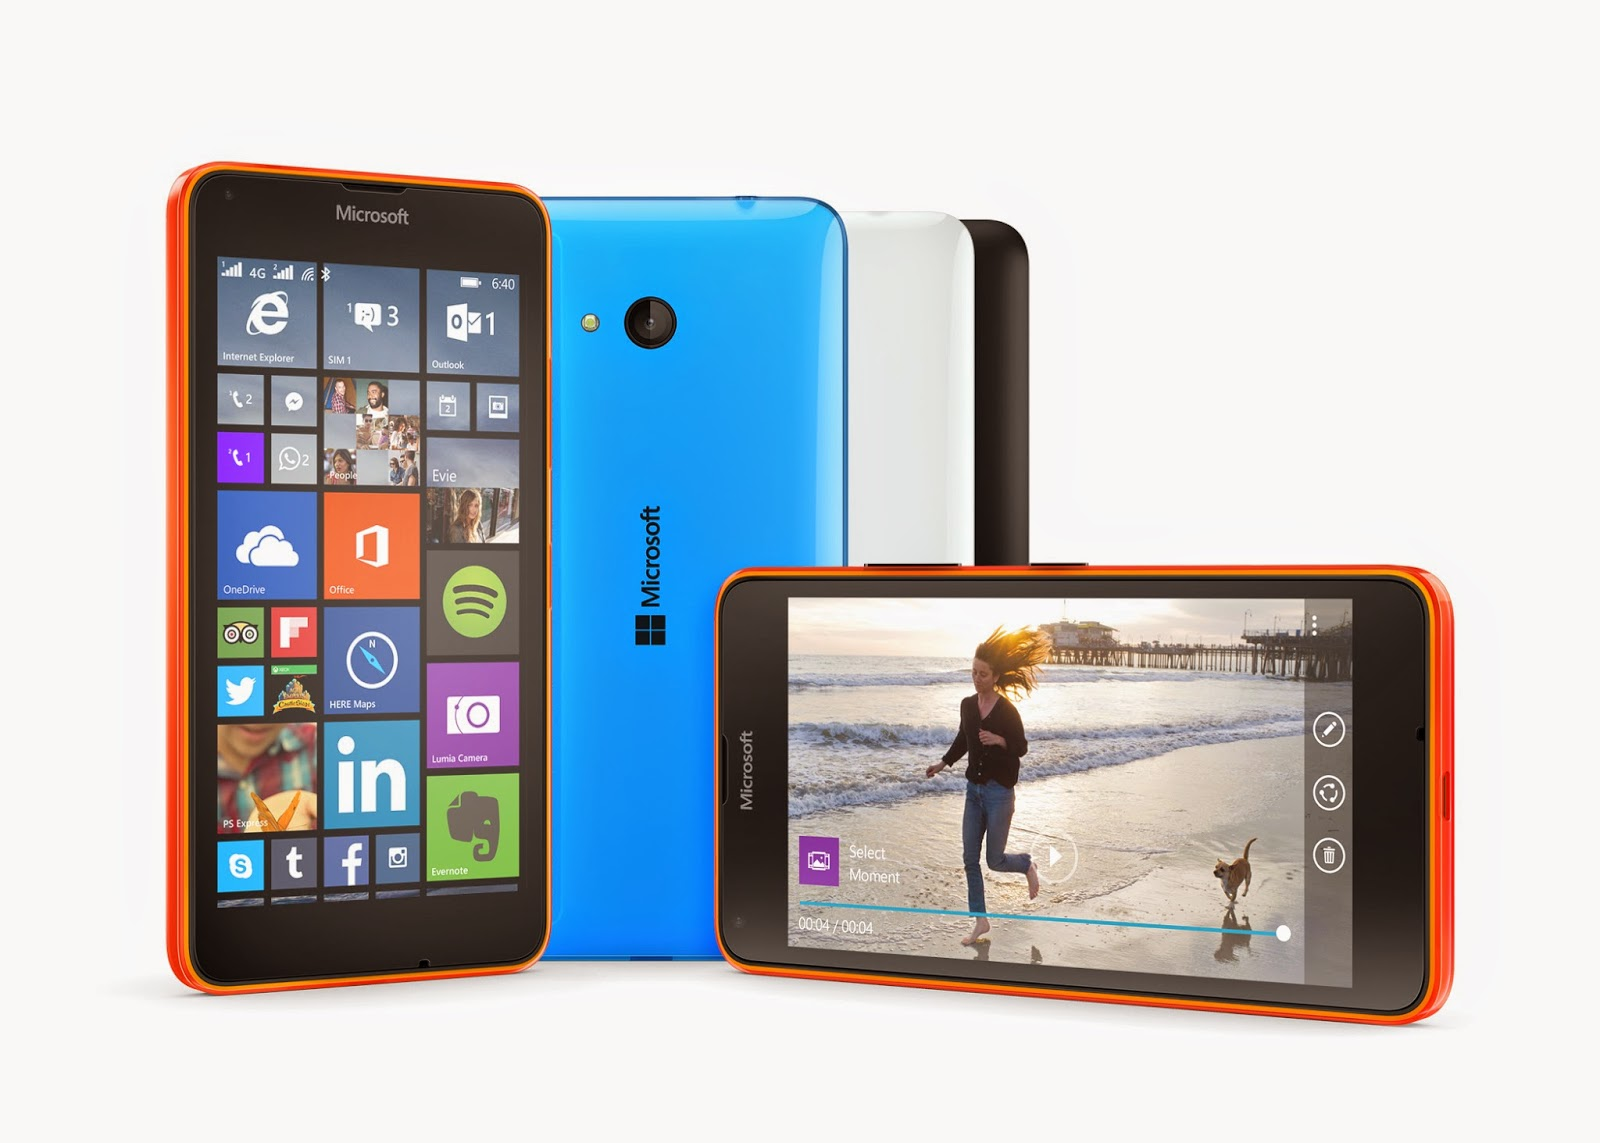 Microsoft unveils mid range Lumia 640 and Lumia 640 XL